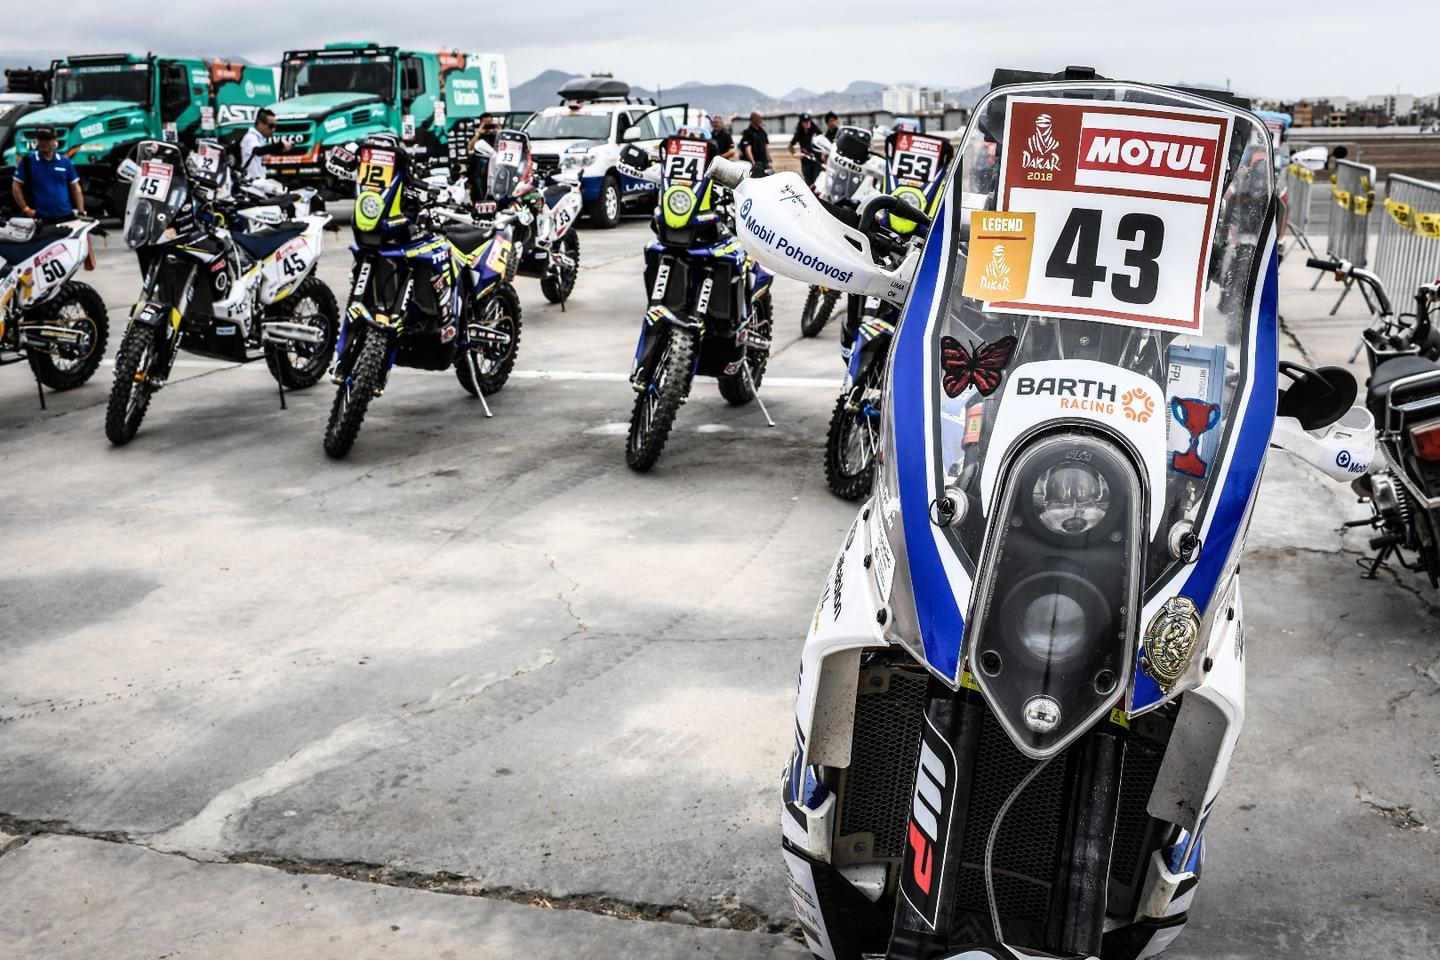 Before the storm: motorcycles lined up for scrutineering in Lima, Peru